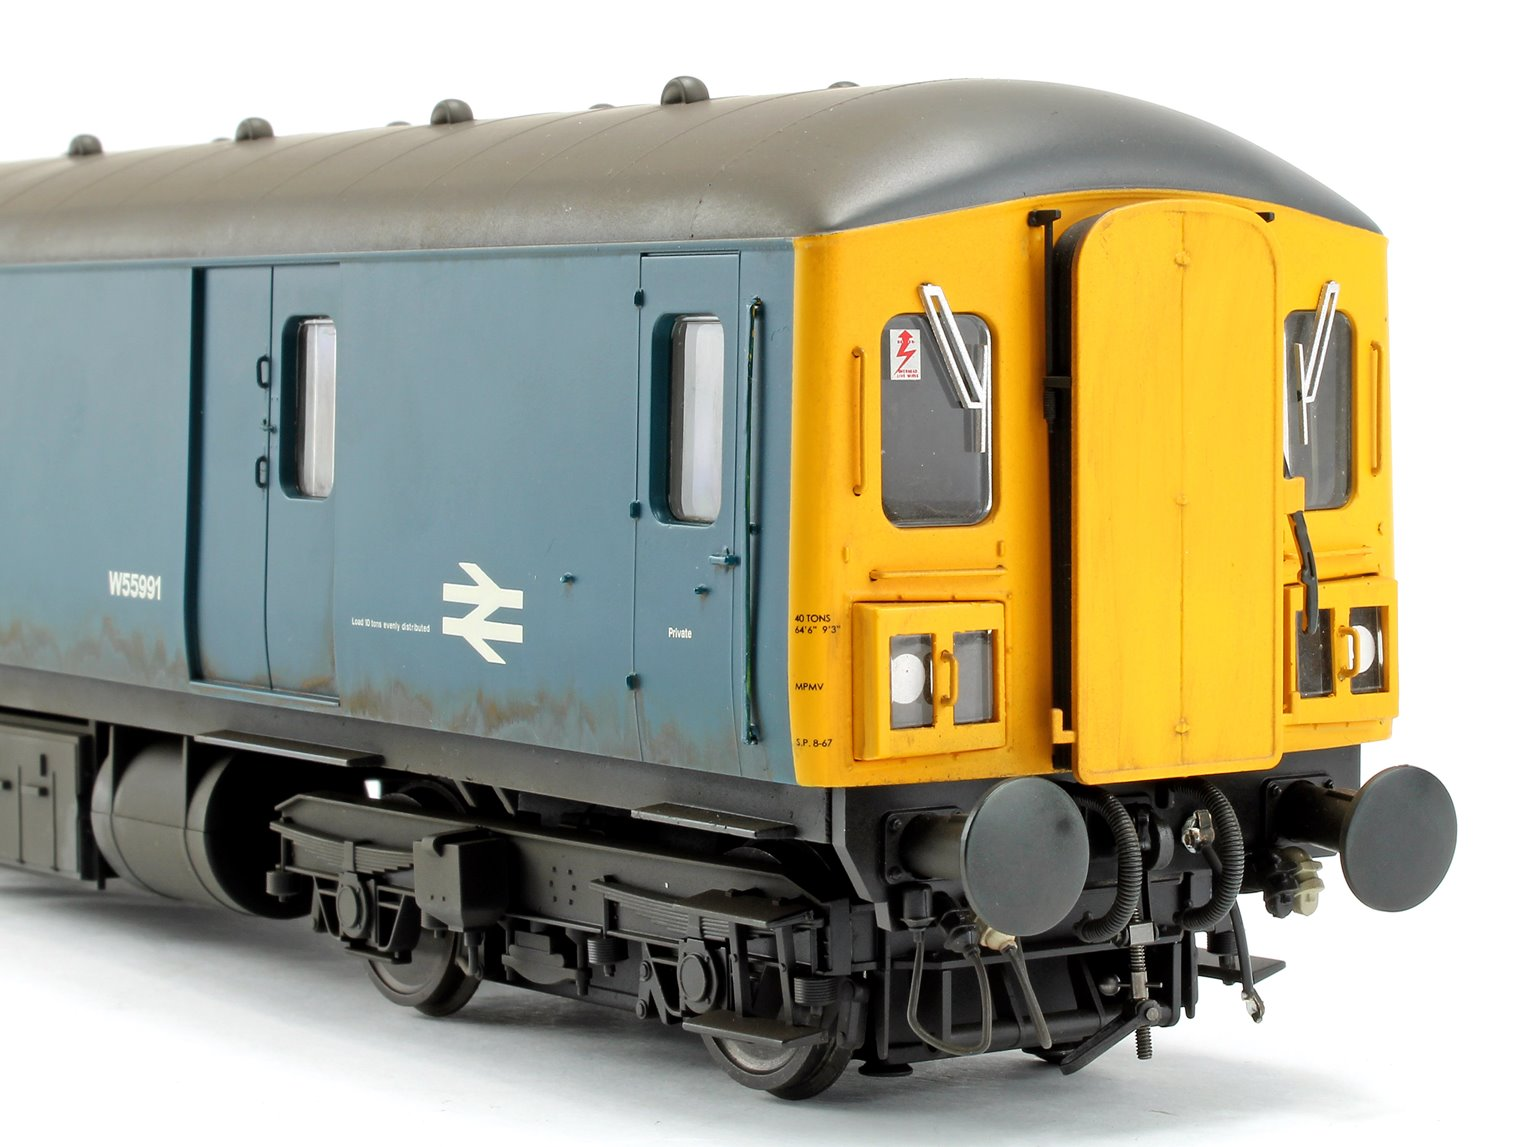 Class 128 DPU 'Parcels Service' BR Rail Blue with Yellow Ends (Weathered) Locomotive W55991